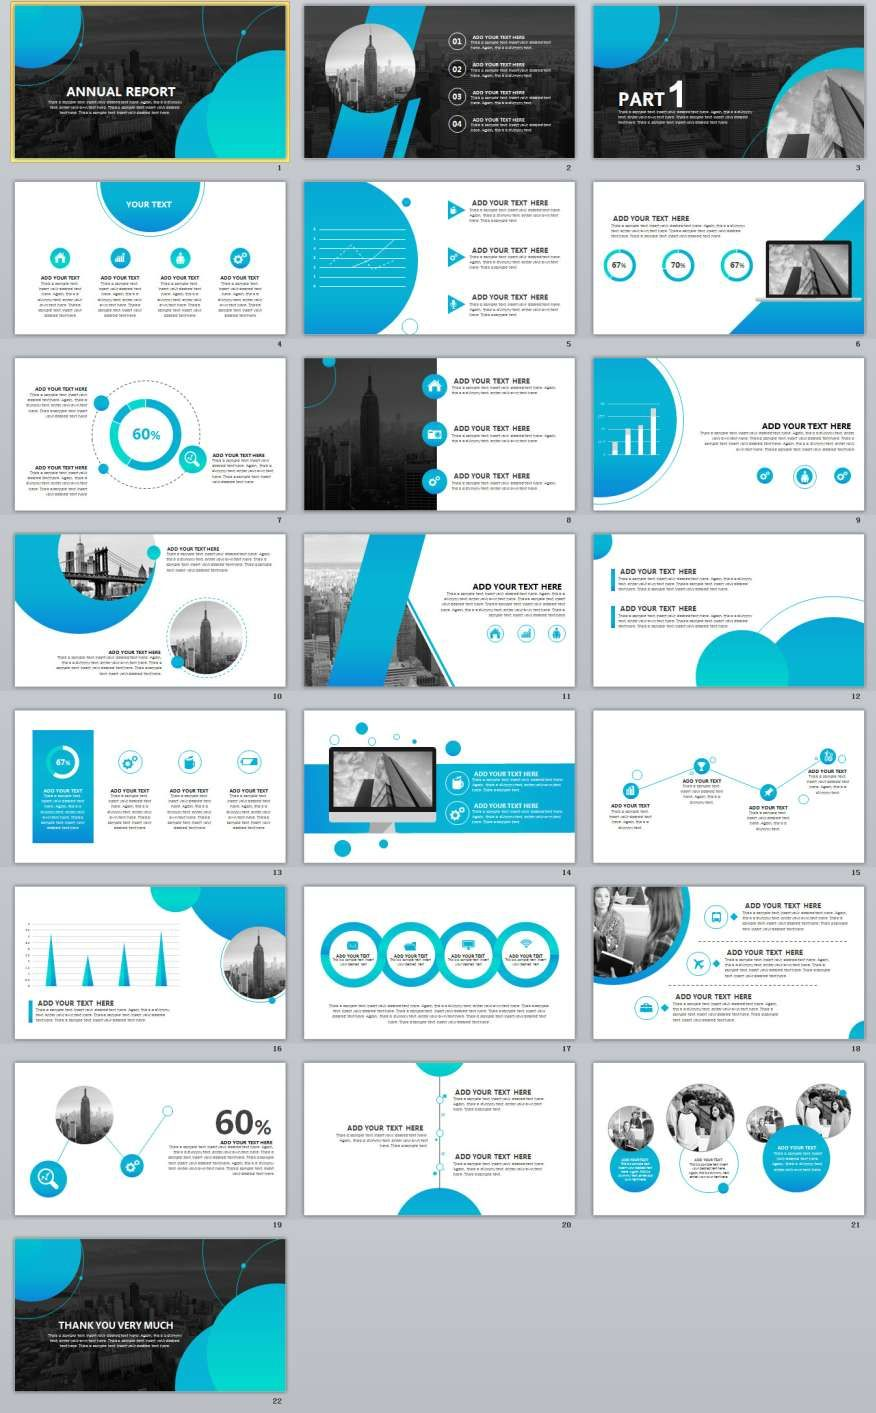 22 blue annual report powerpoint templates 22 blue annual report powerpoint templates the highest quality powerpoint templates and keynote templates download ccuart Gallery